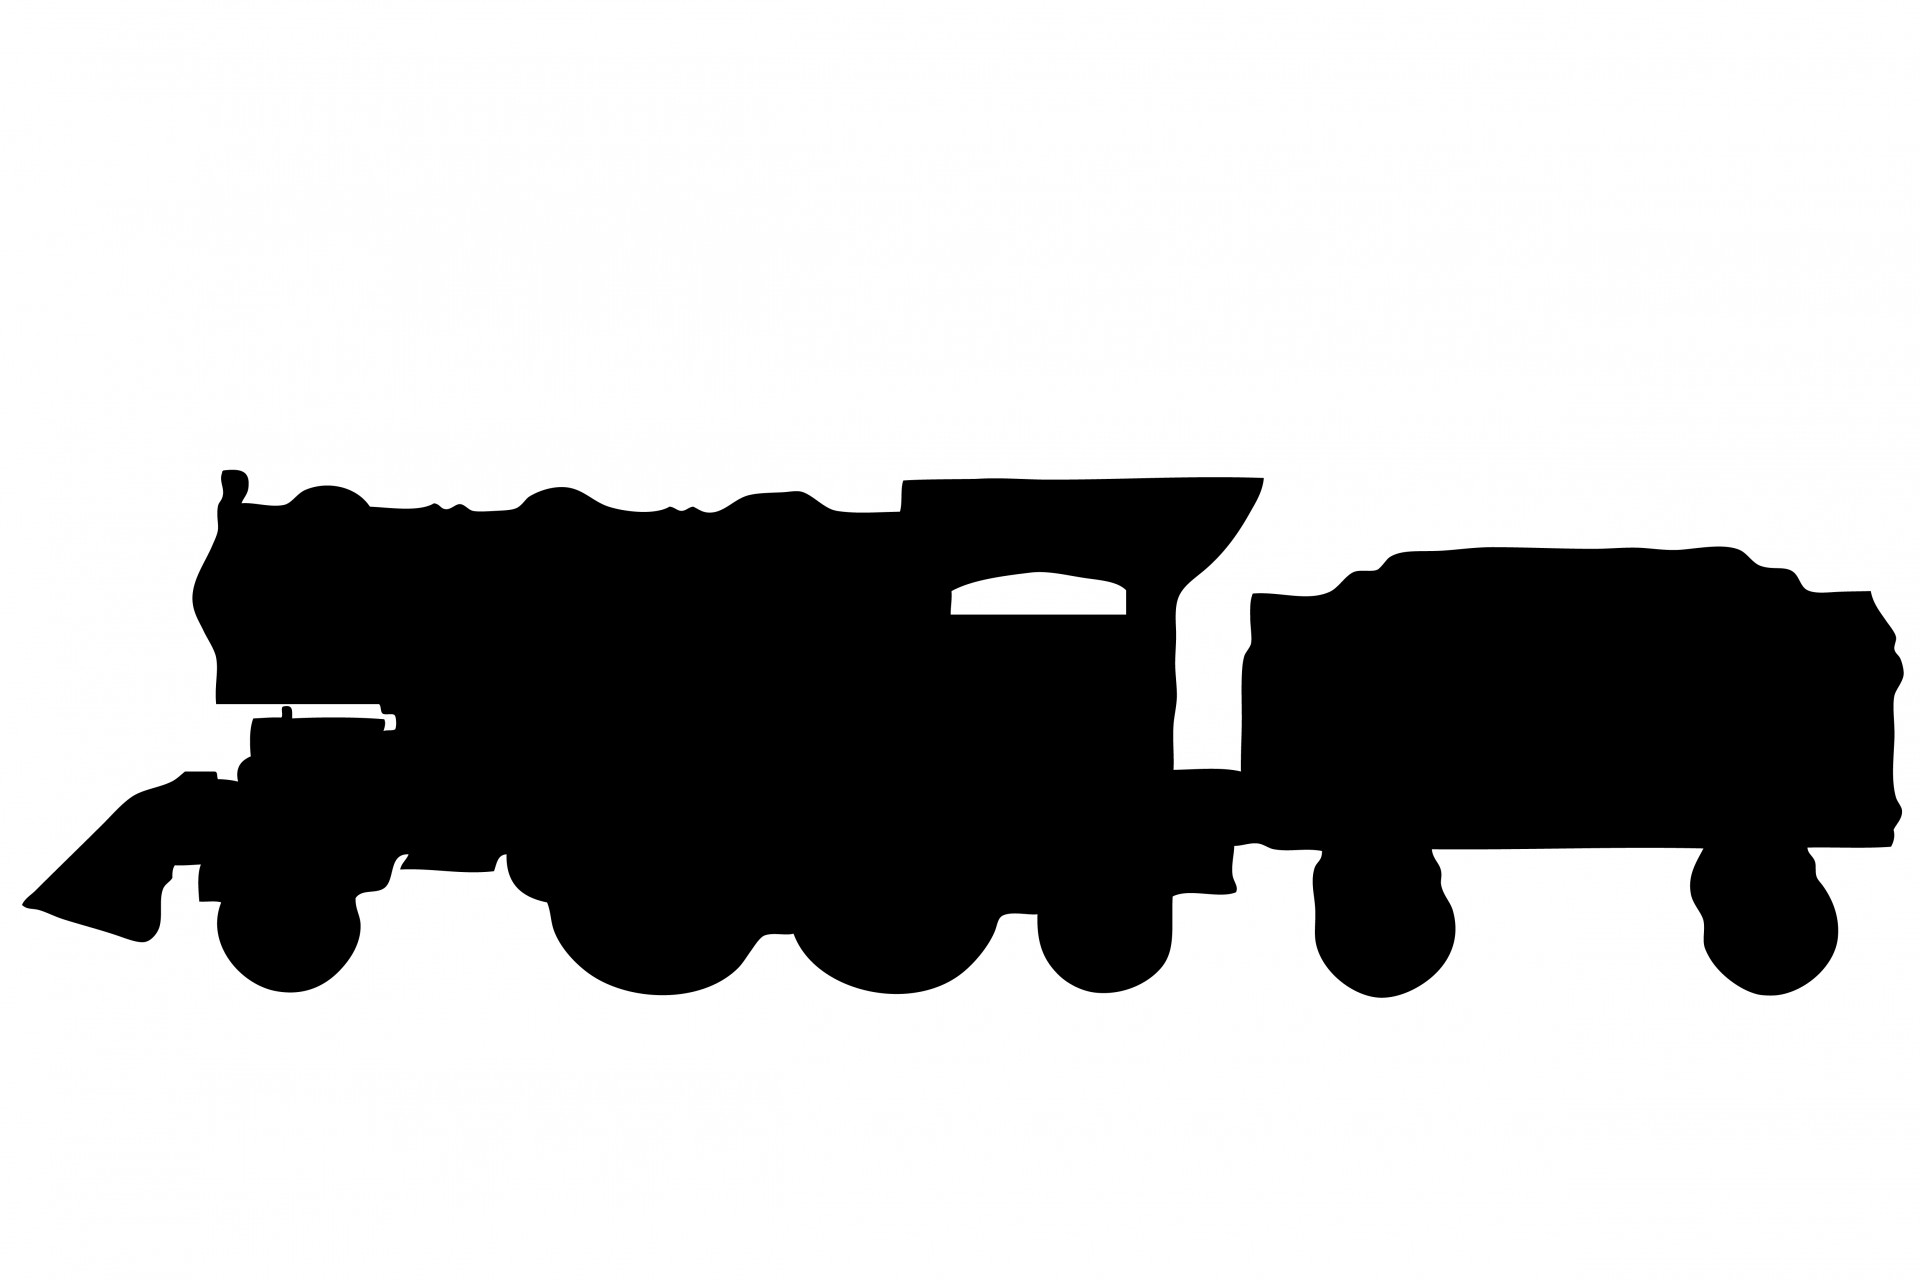 Silhouette train clipart black and white jpg royalty free library Free Train Silhouette Cliparts, Download Free Clip Art, Free ... jpg royalty free library